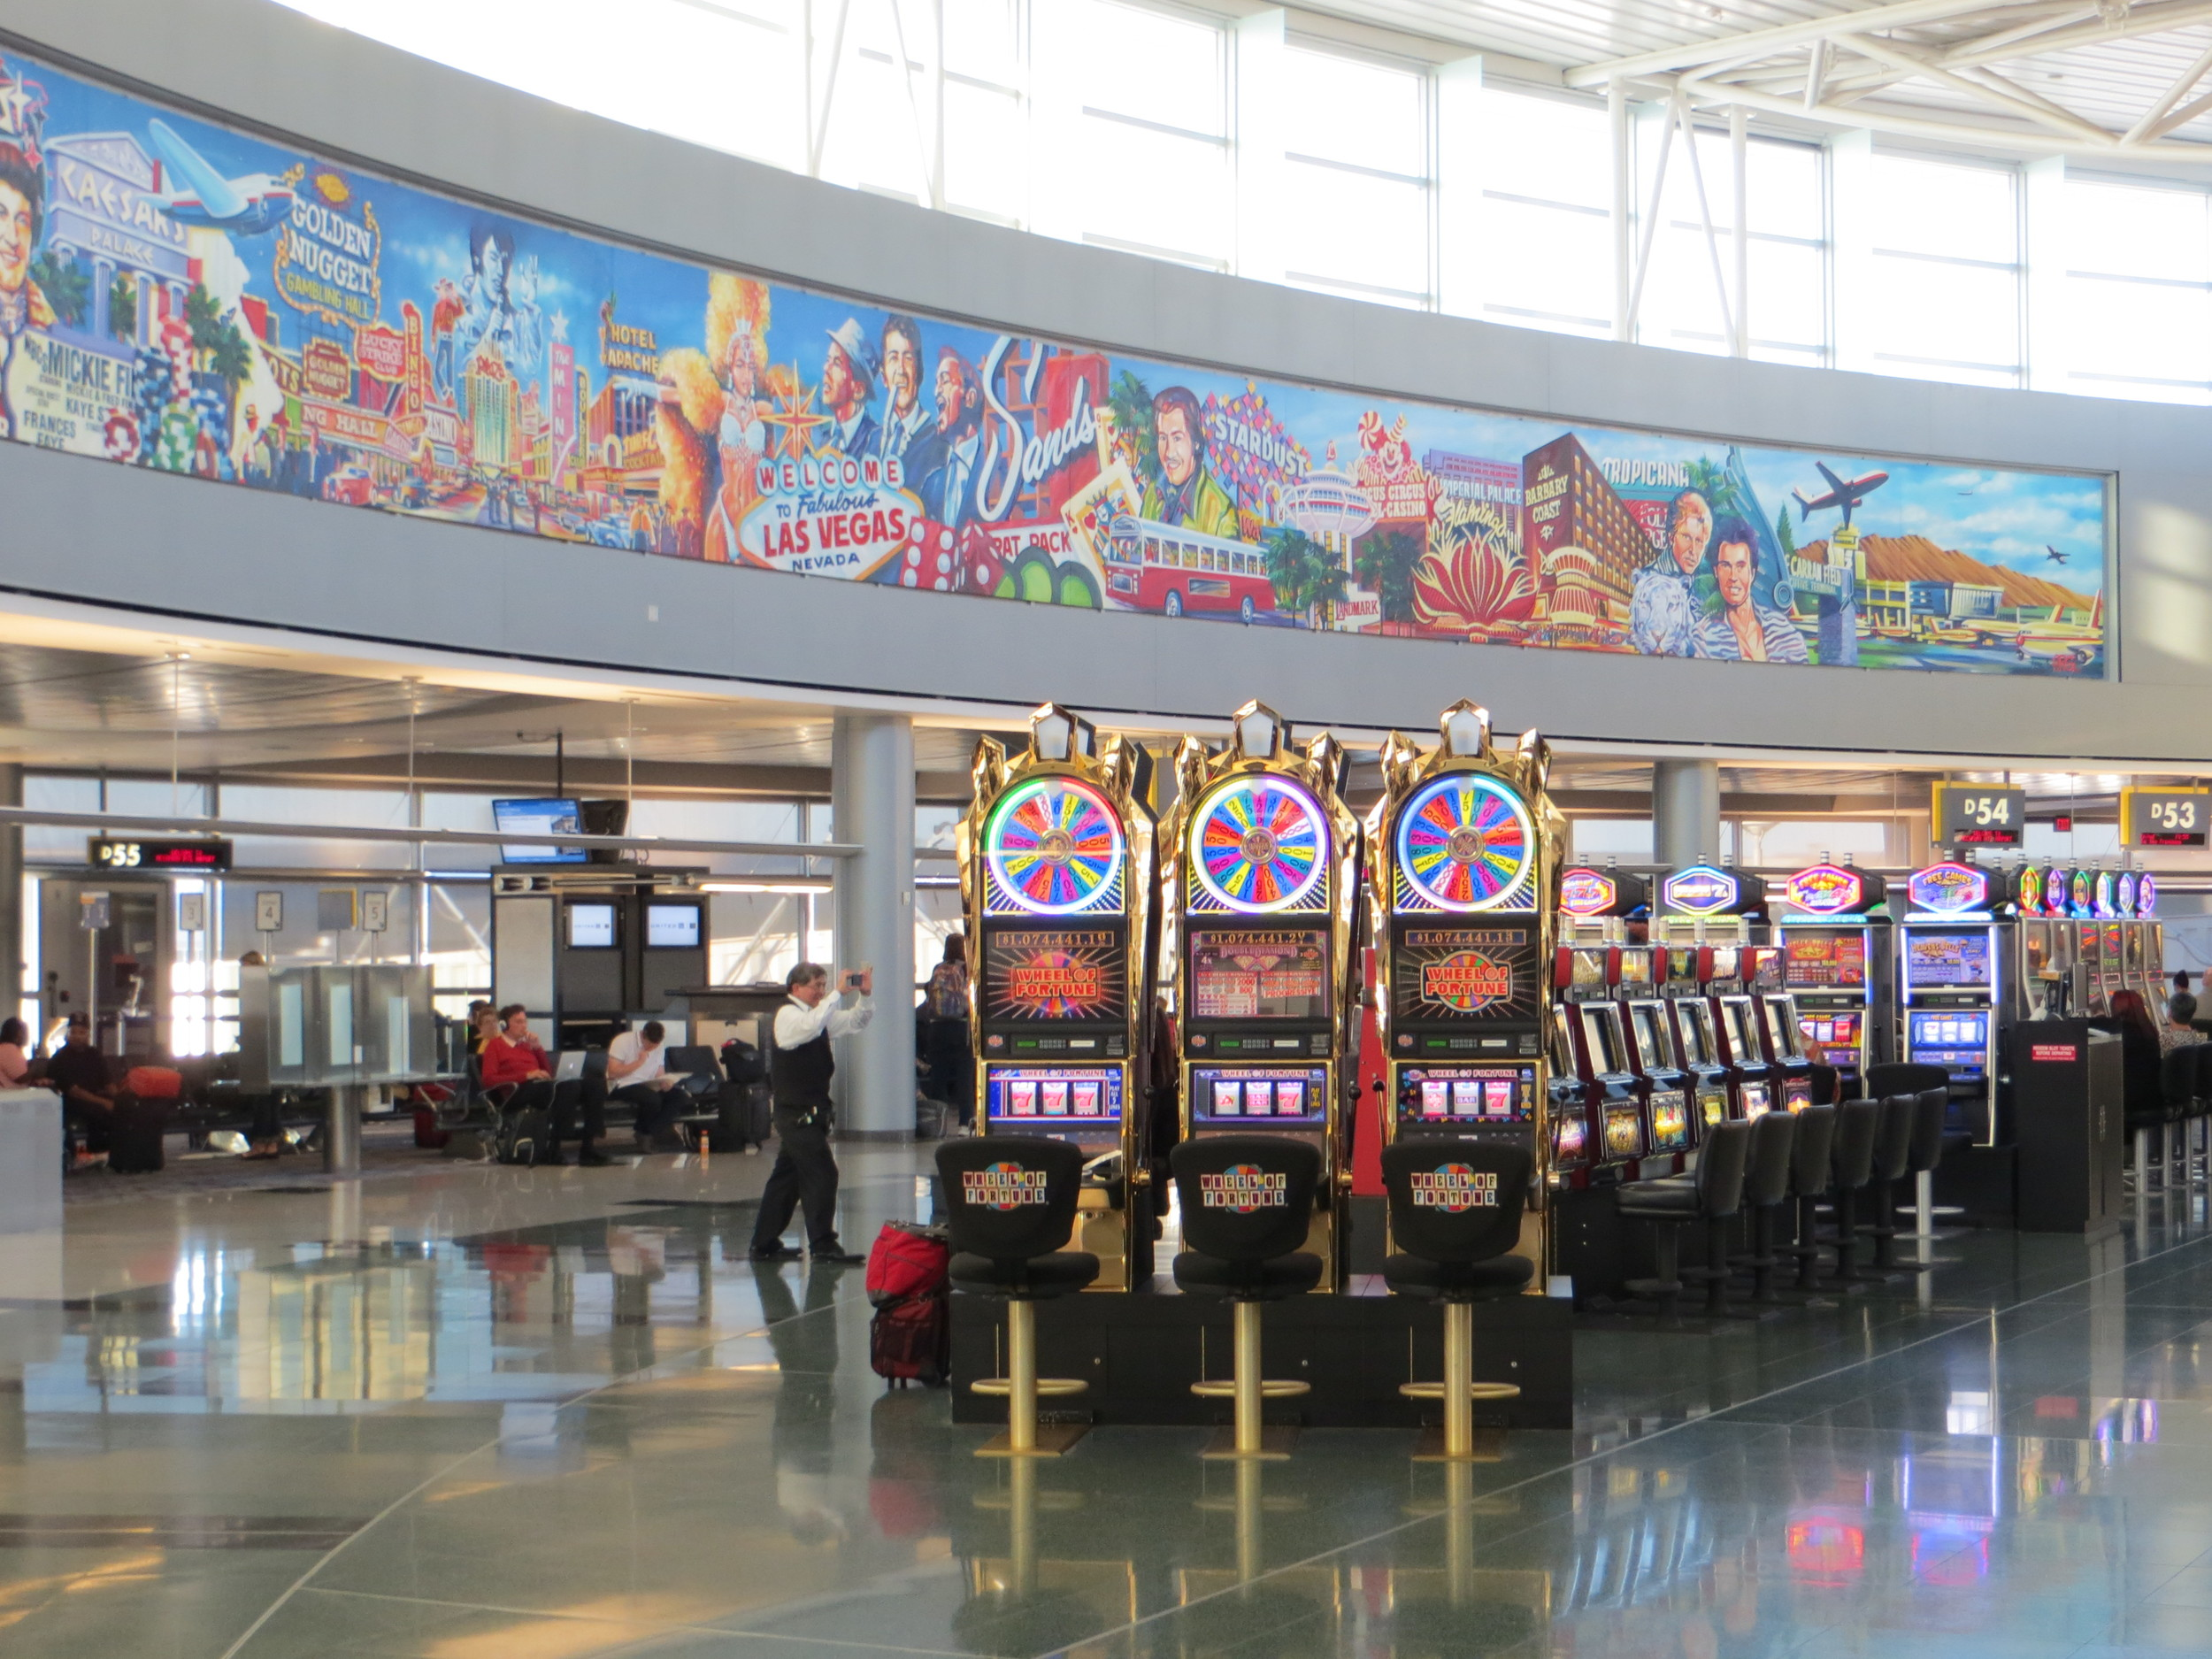 McCarran Airport Las Vegas. Vegaster Tip: It's always busy!